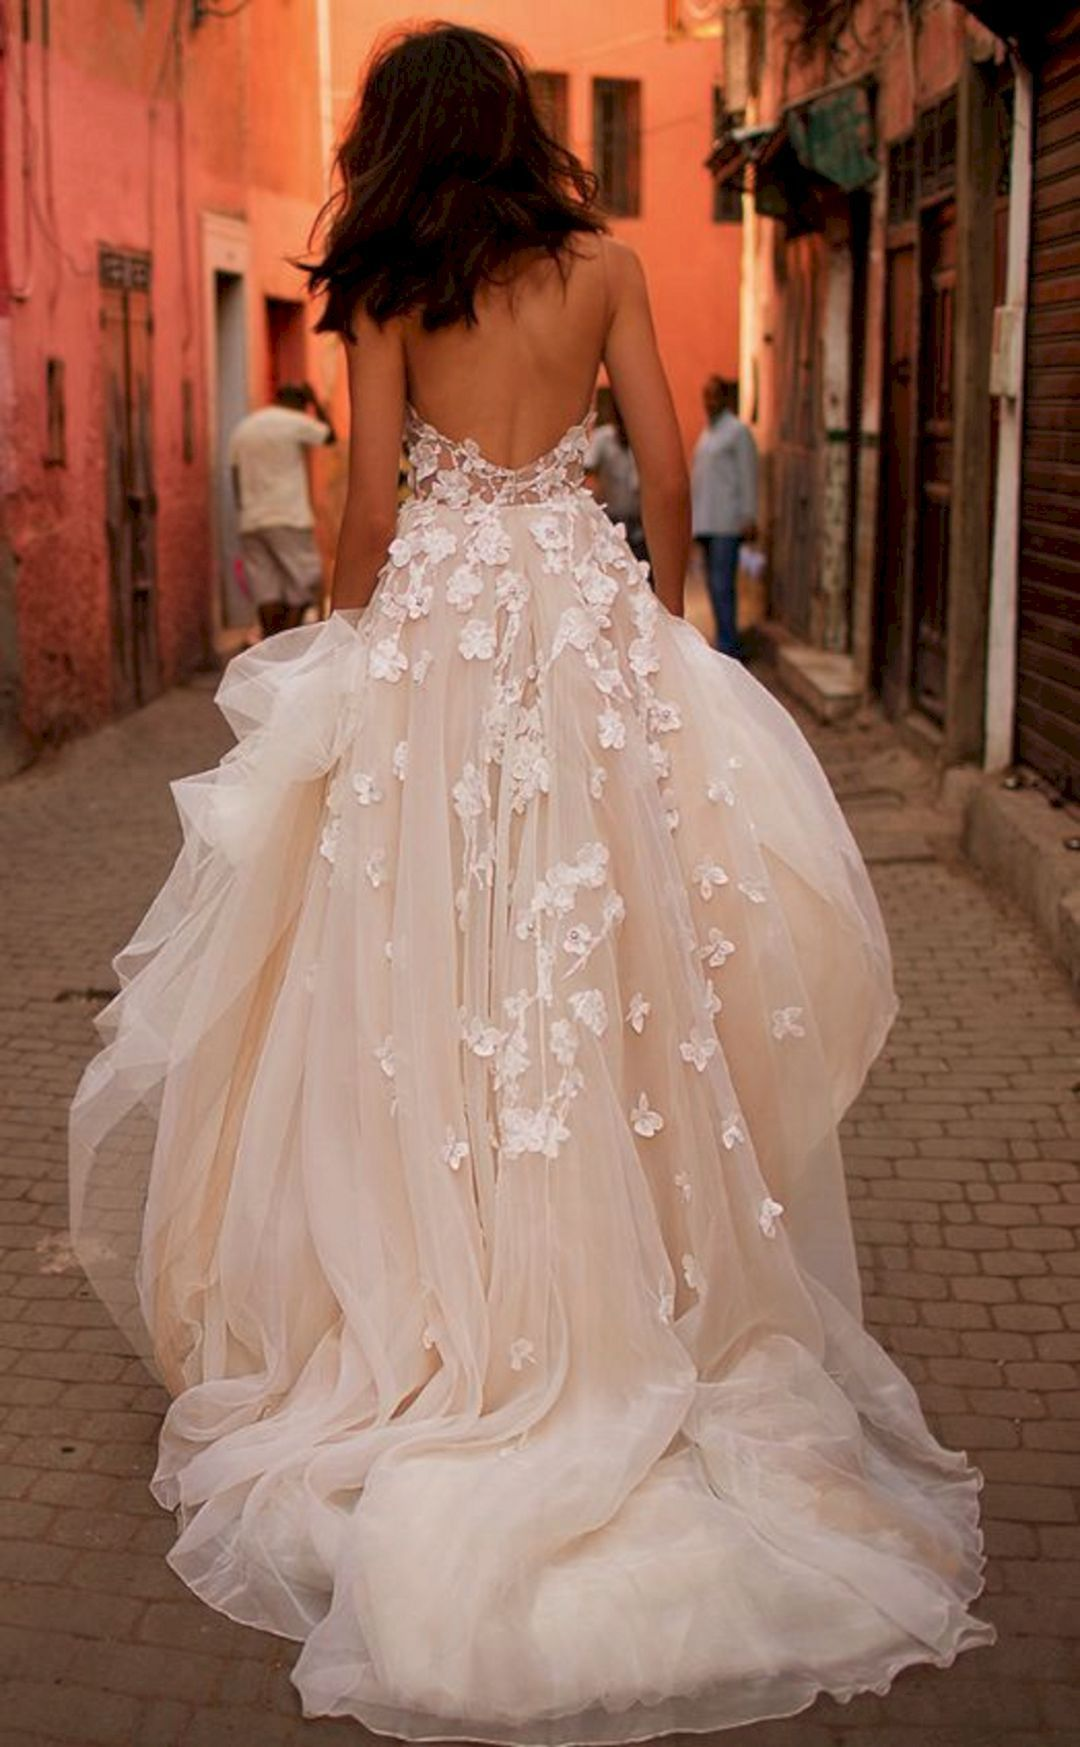 Awesome 44+ Stunning Wedding Dresses & Gowns for Your Big Day https ...